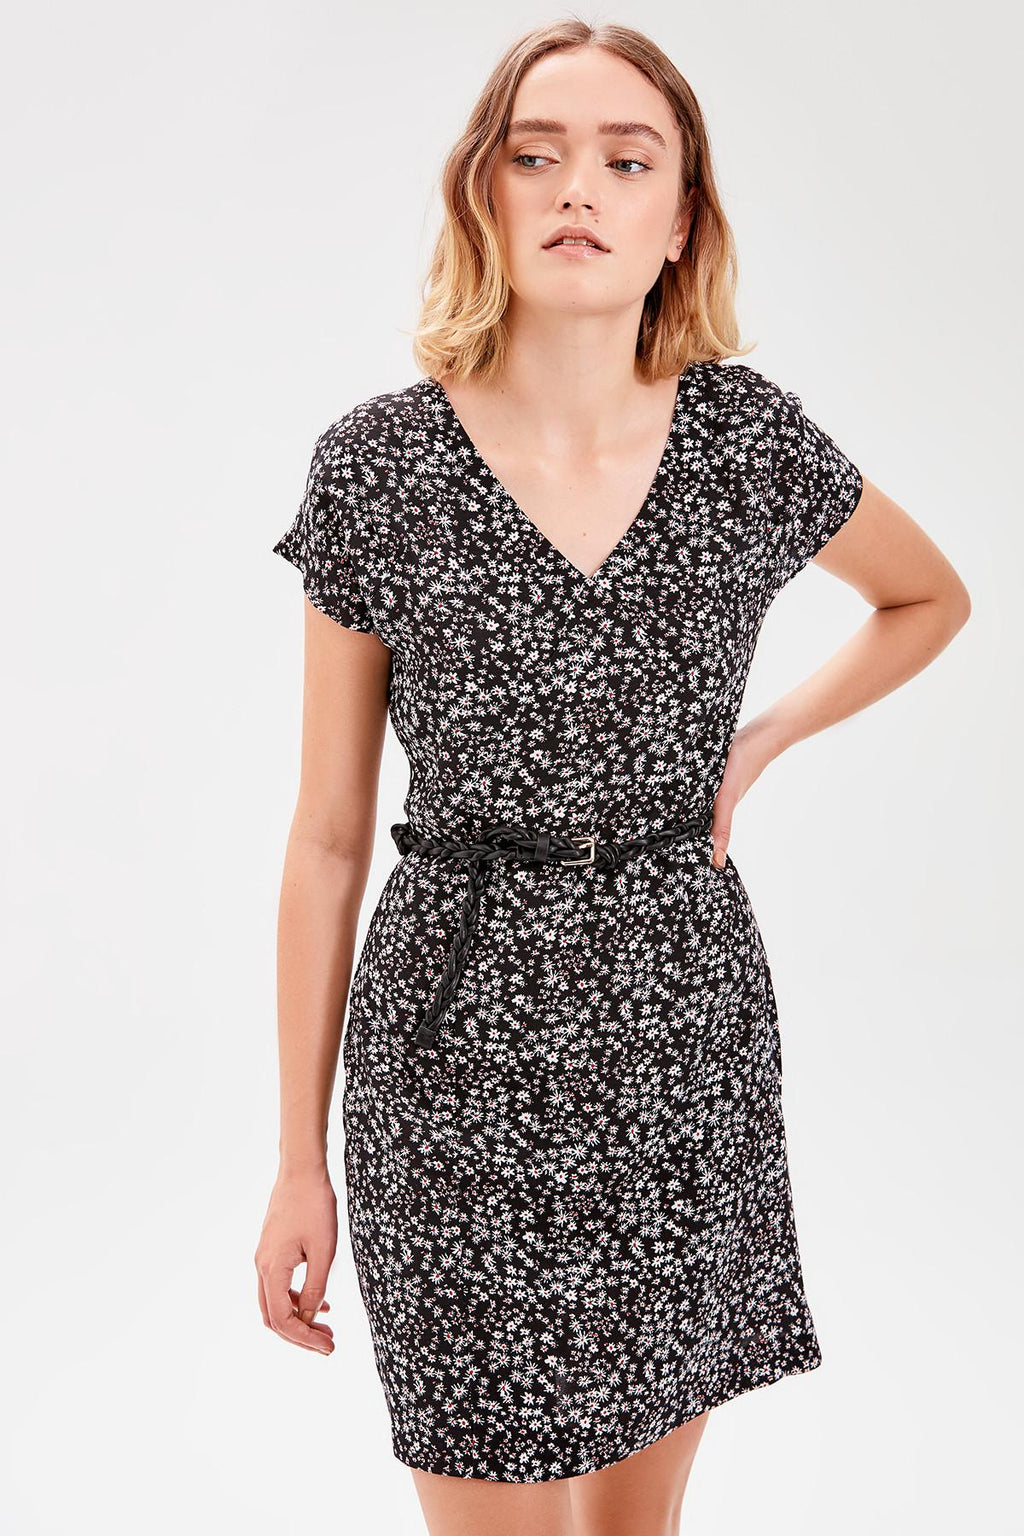 Black Flower Print Dress - emuuz.com